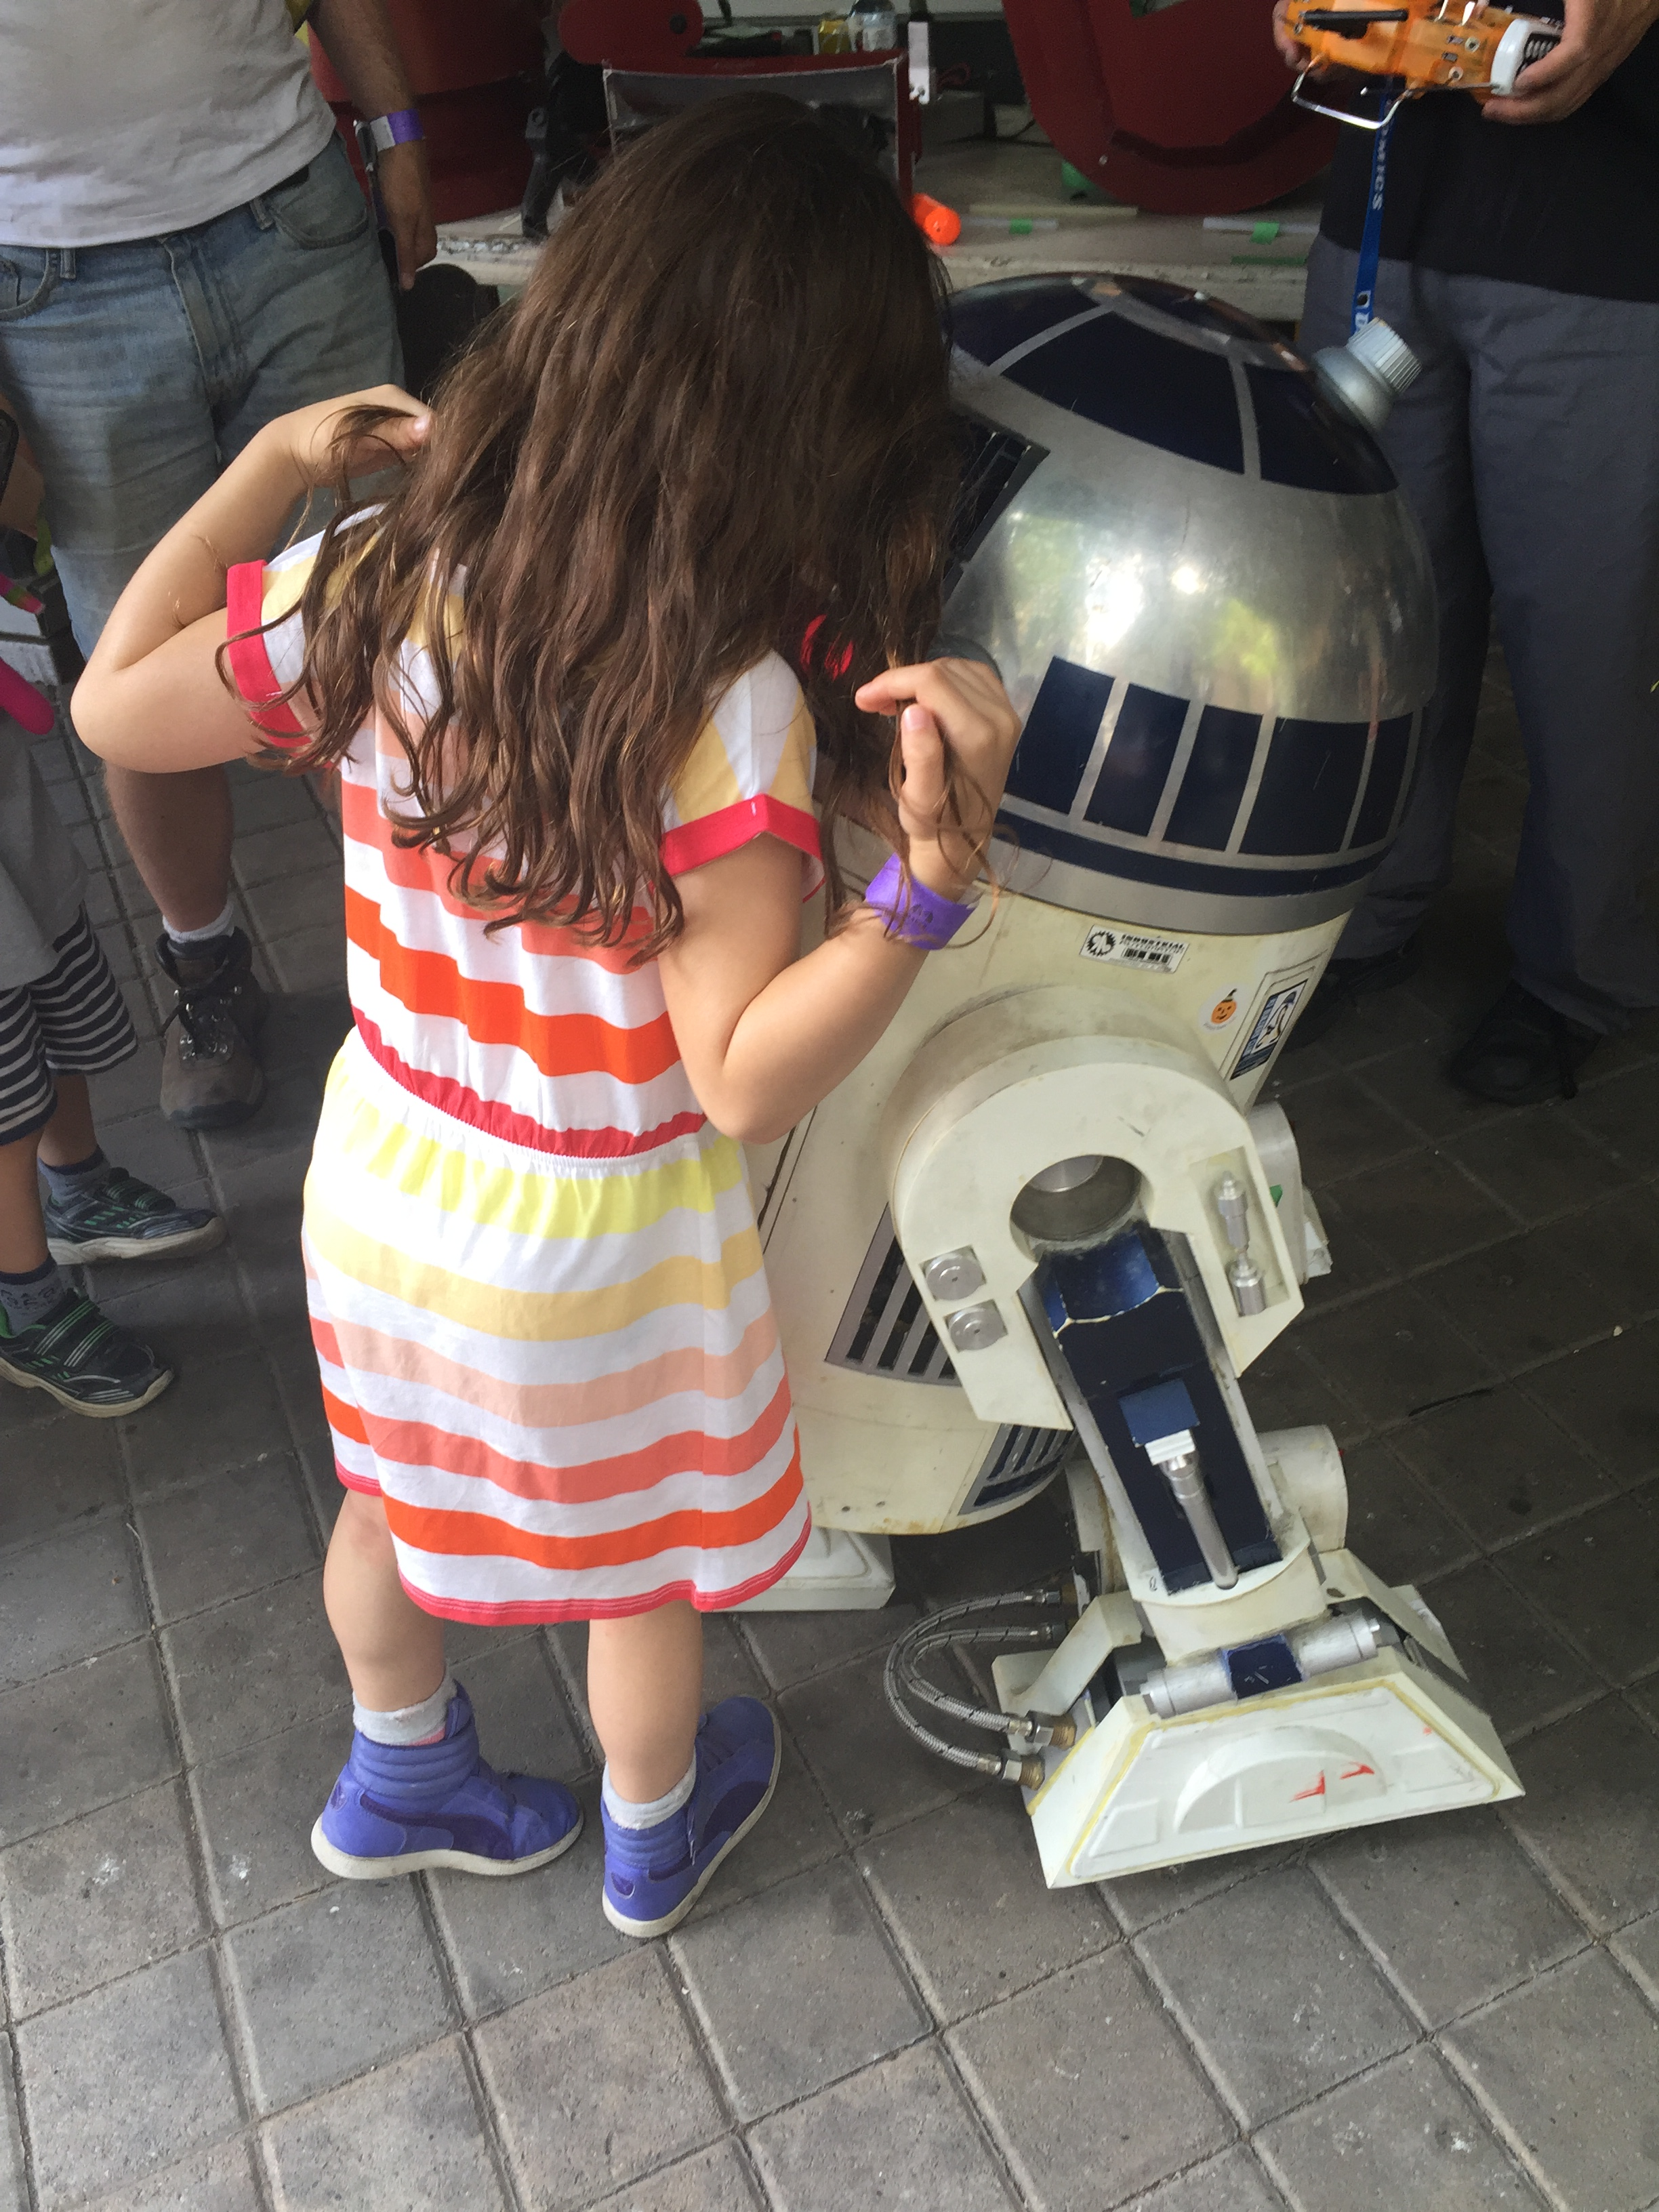 Boo and R2D2